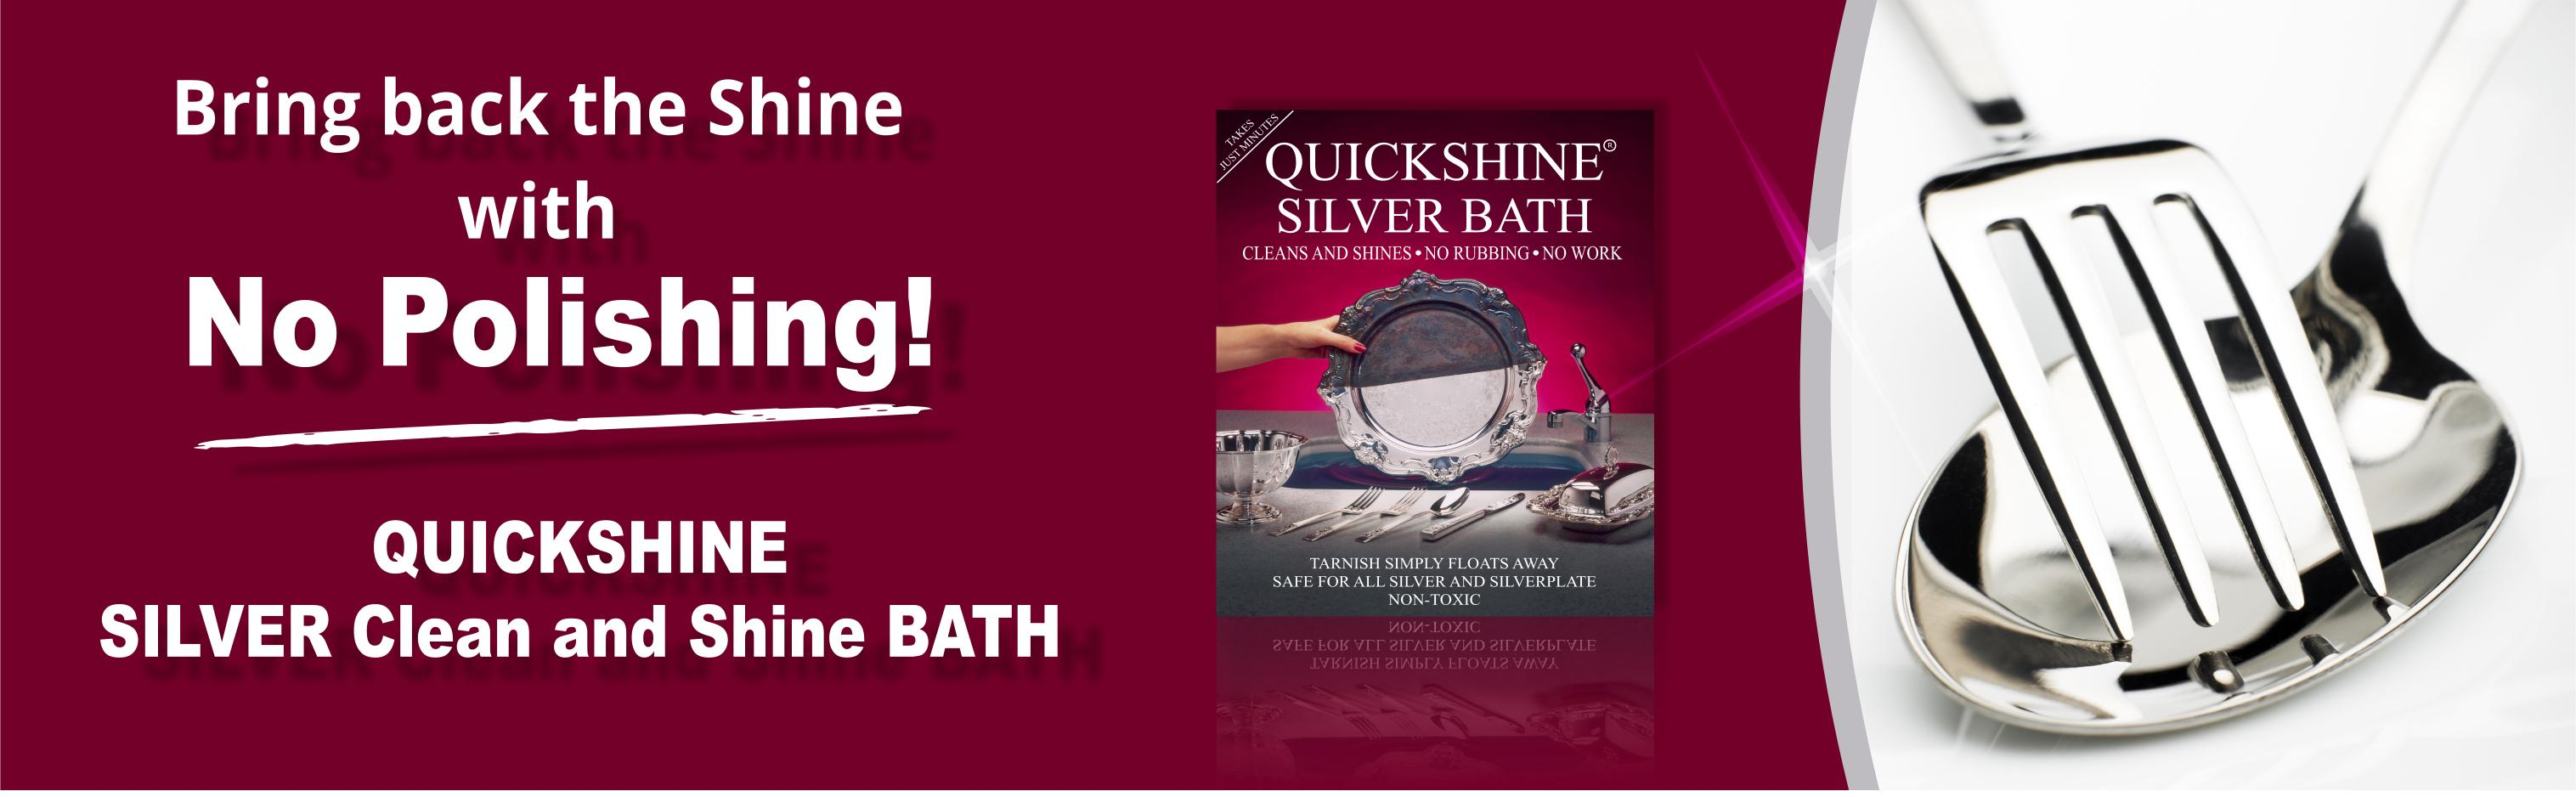 Silver Plating Bath 4 sachets Makes your silver sparkle